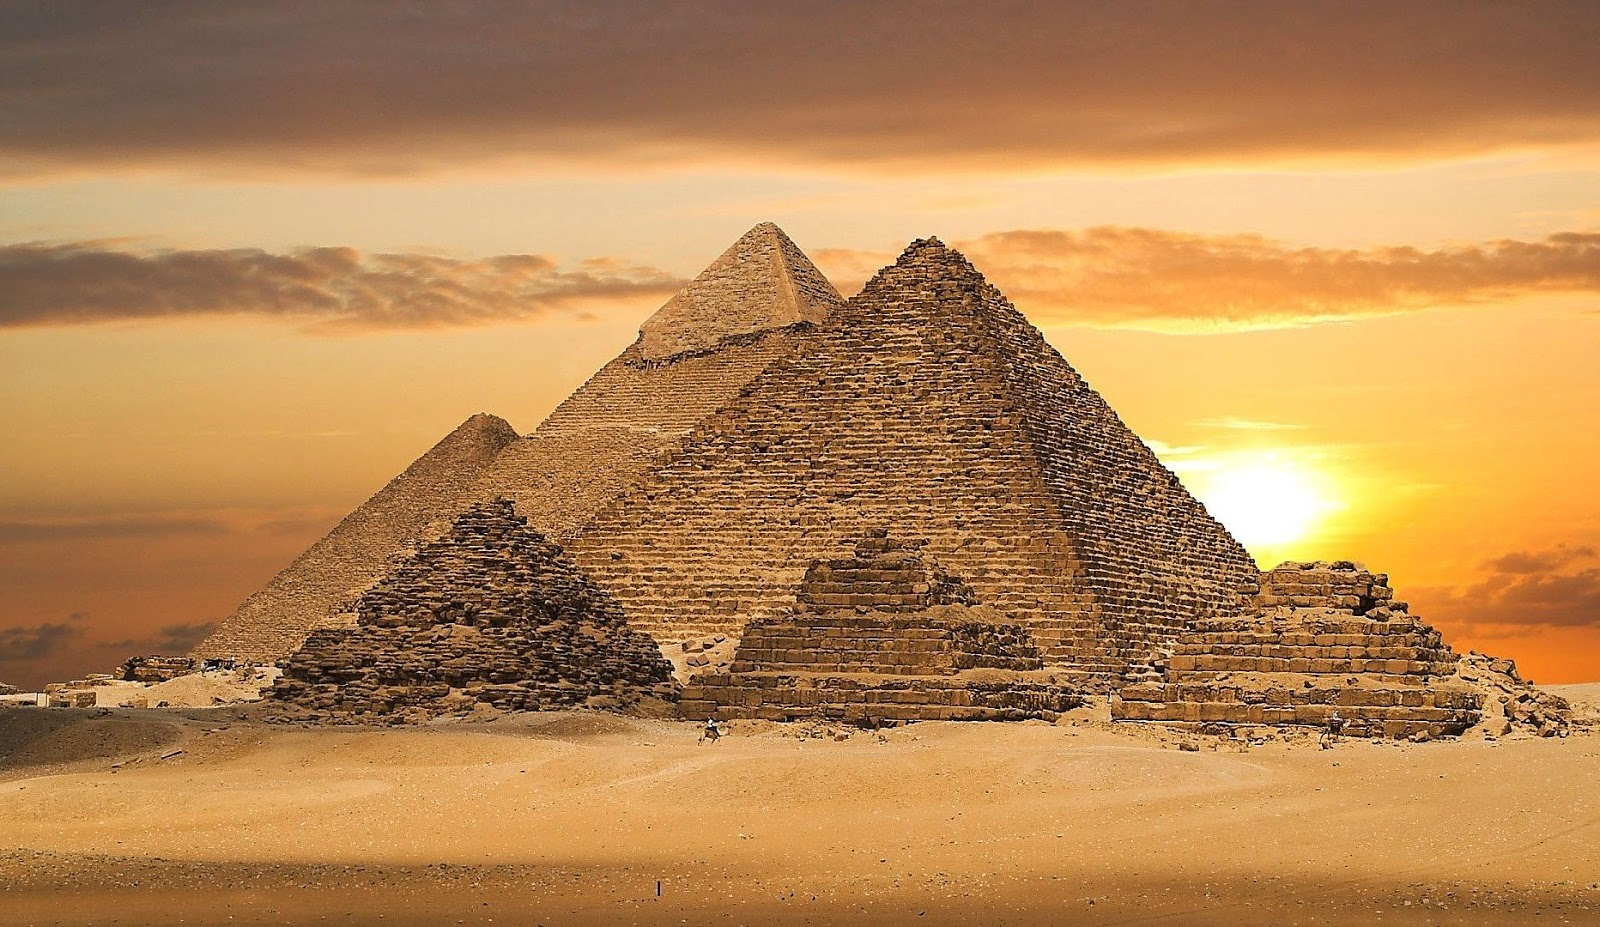 pyramid background-#21